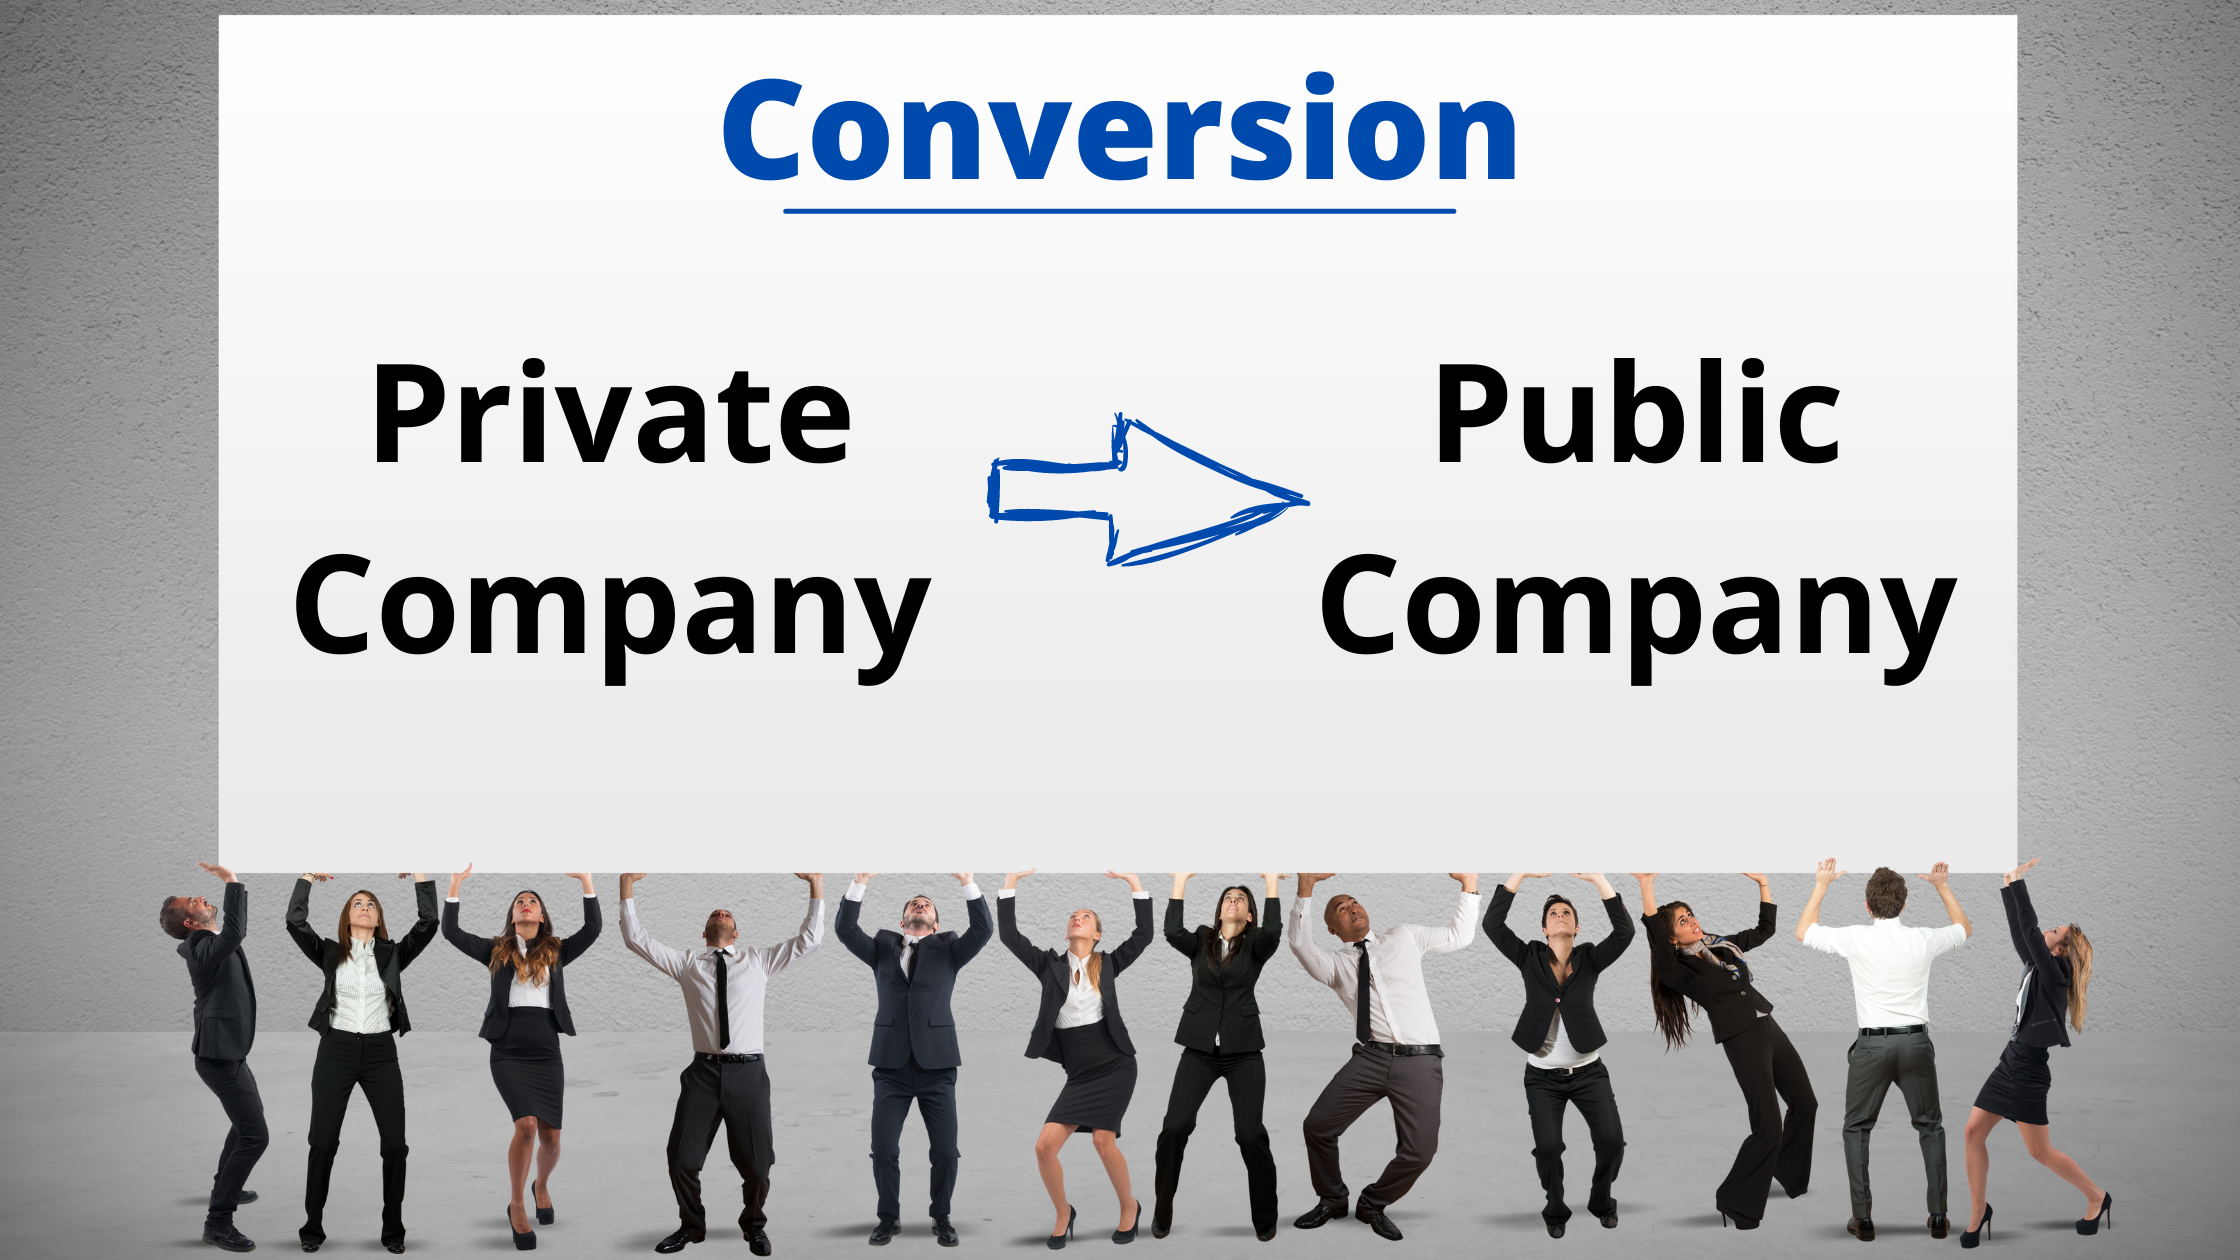 Conversion: Private Company to Public Company